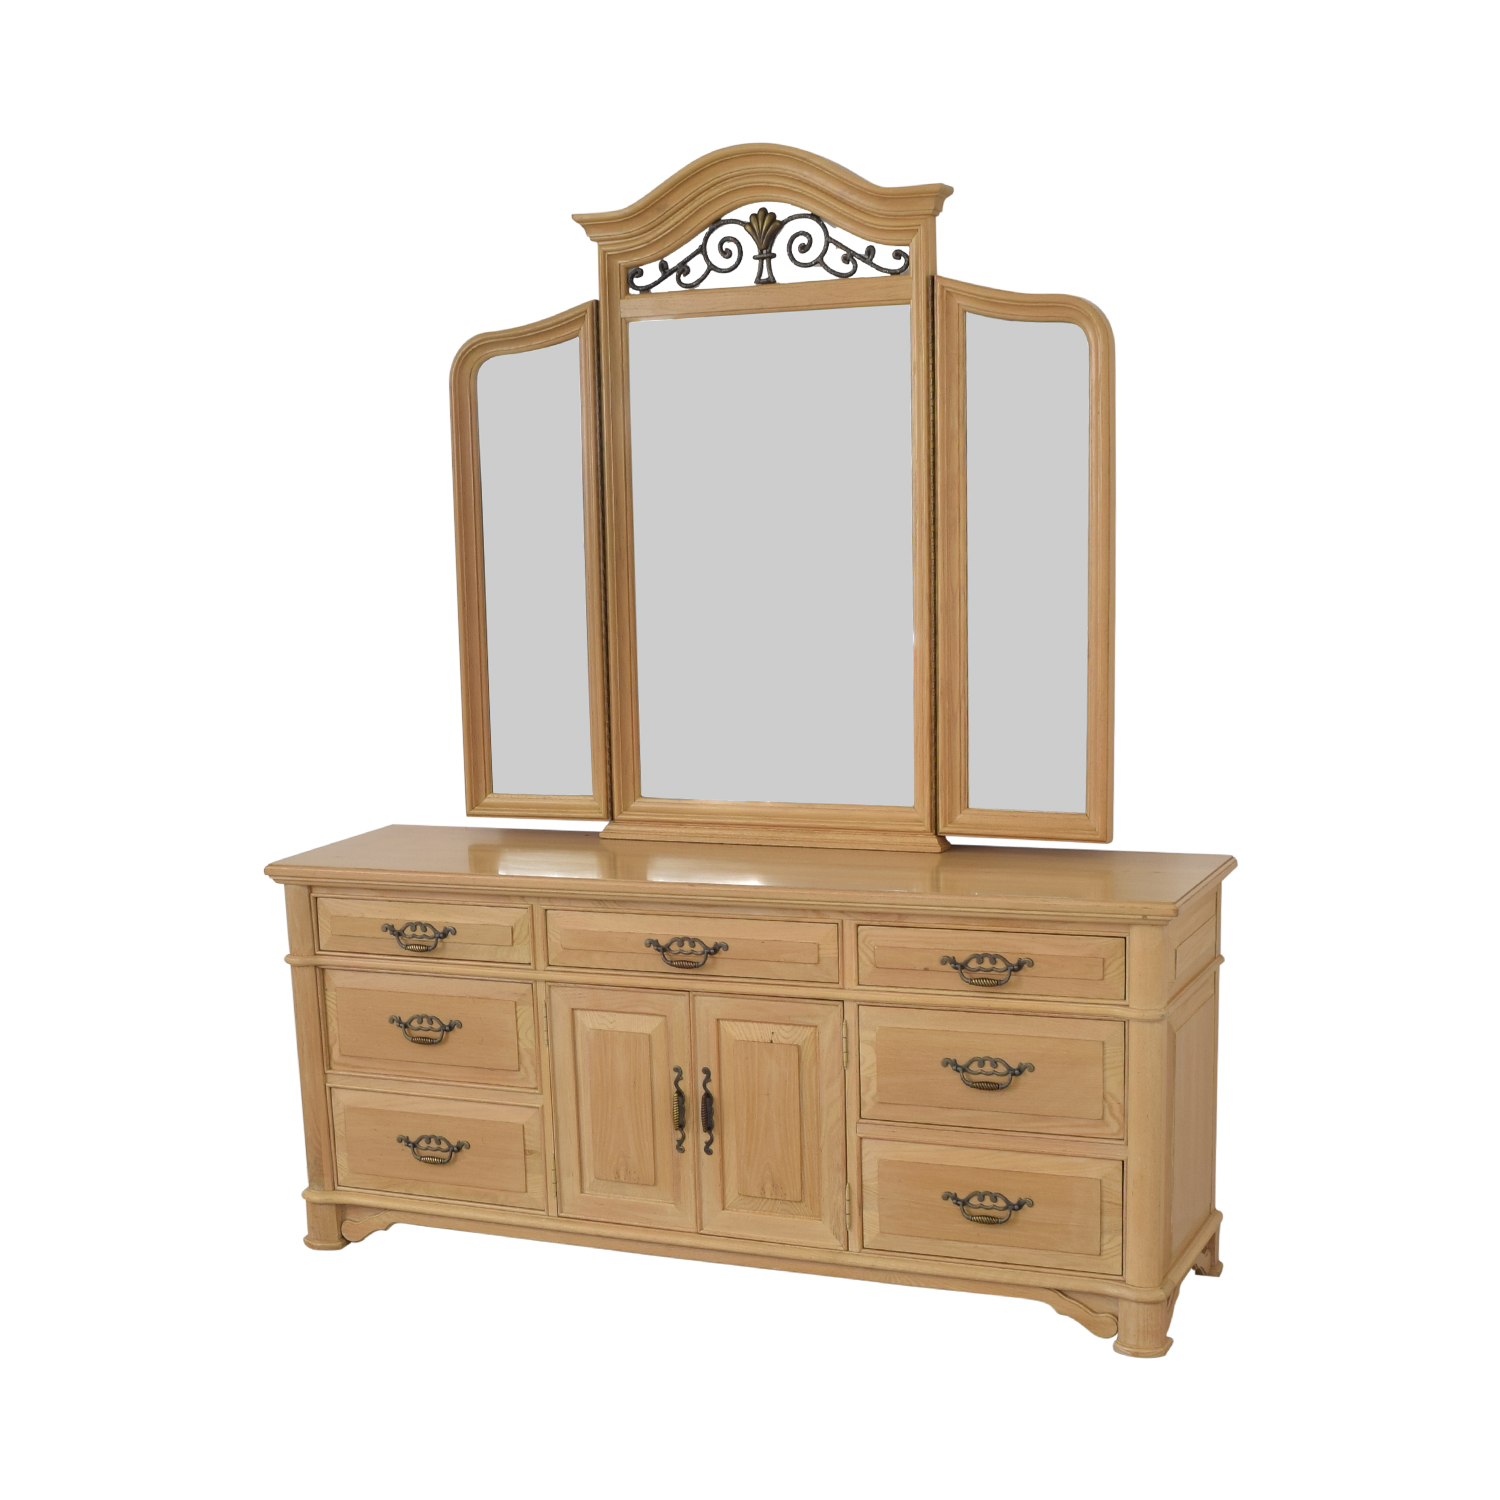 Thomasville Triple Dresser with Mirror / Storage